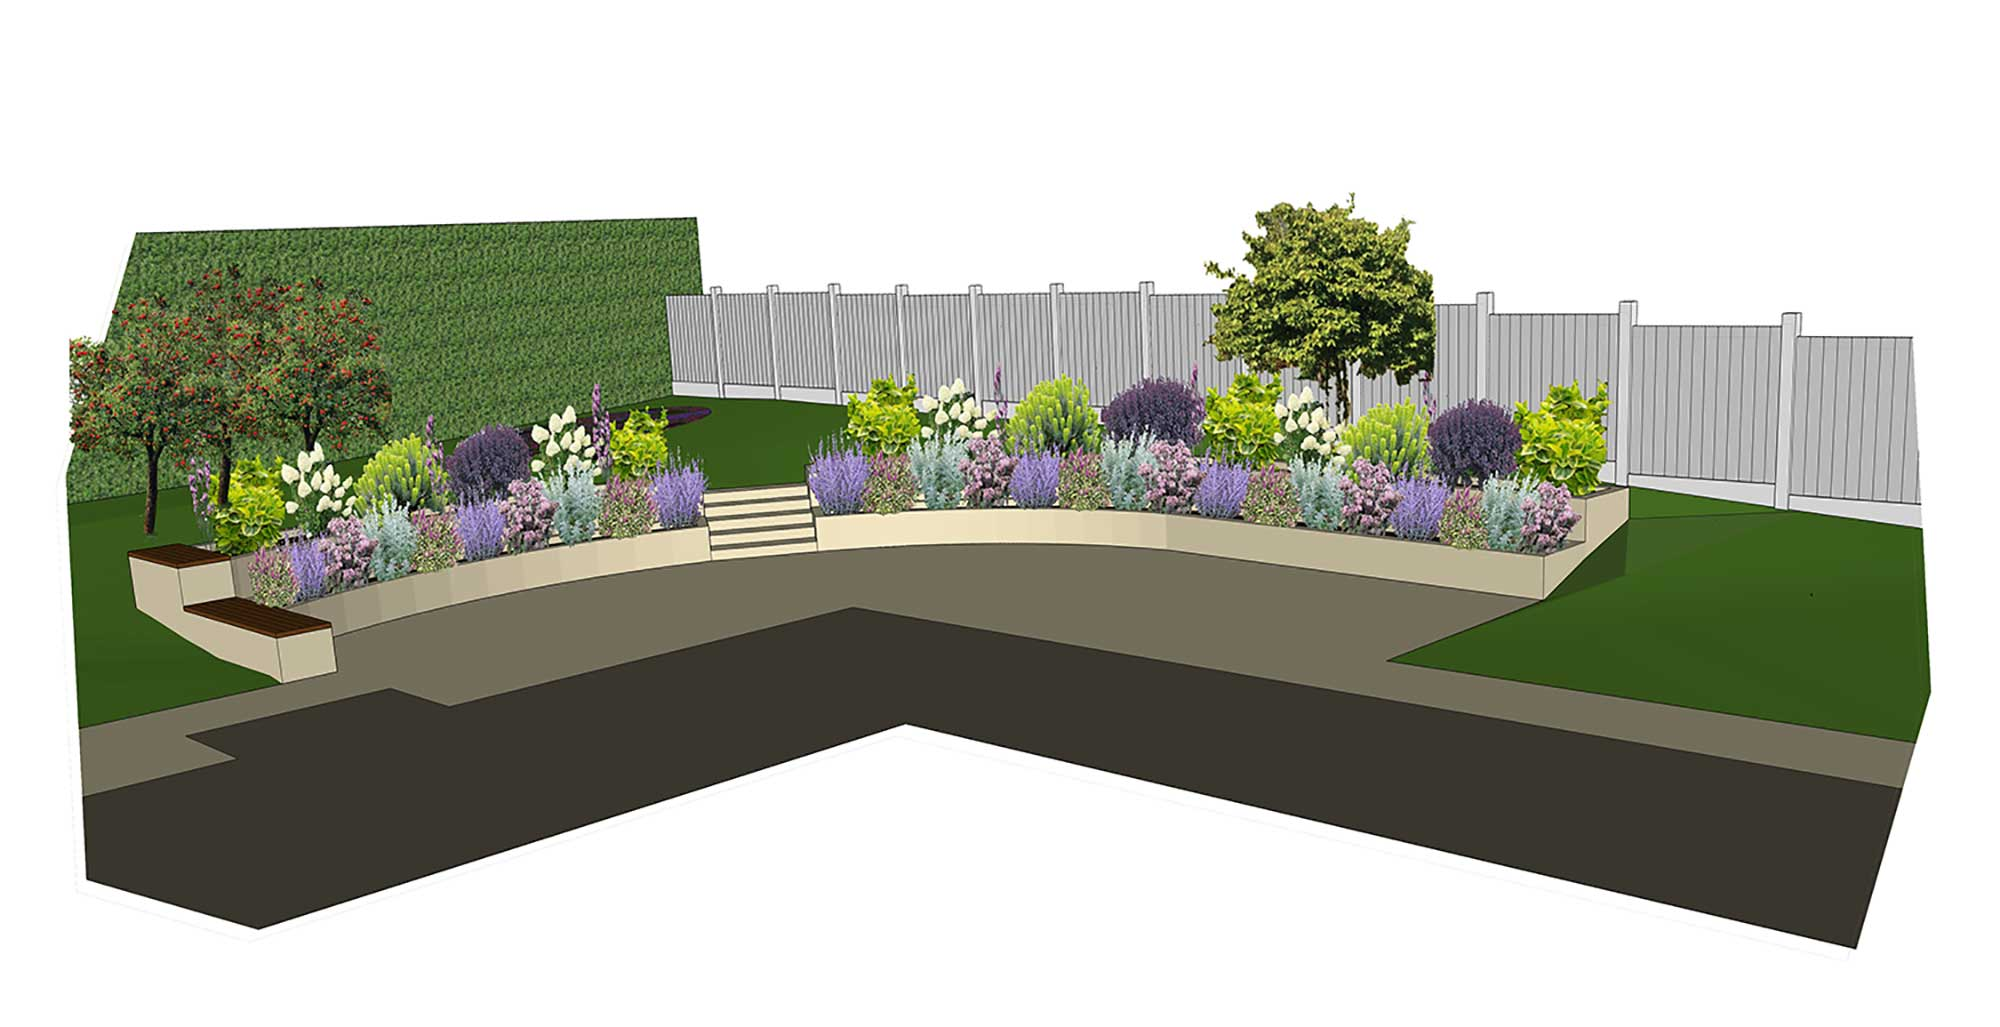 Rear garden design visualisation garden design layout for Garden layouts designs